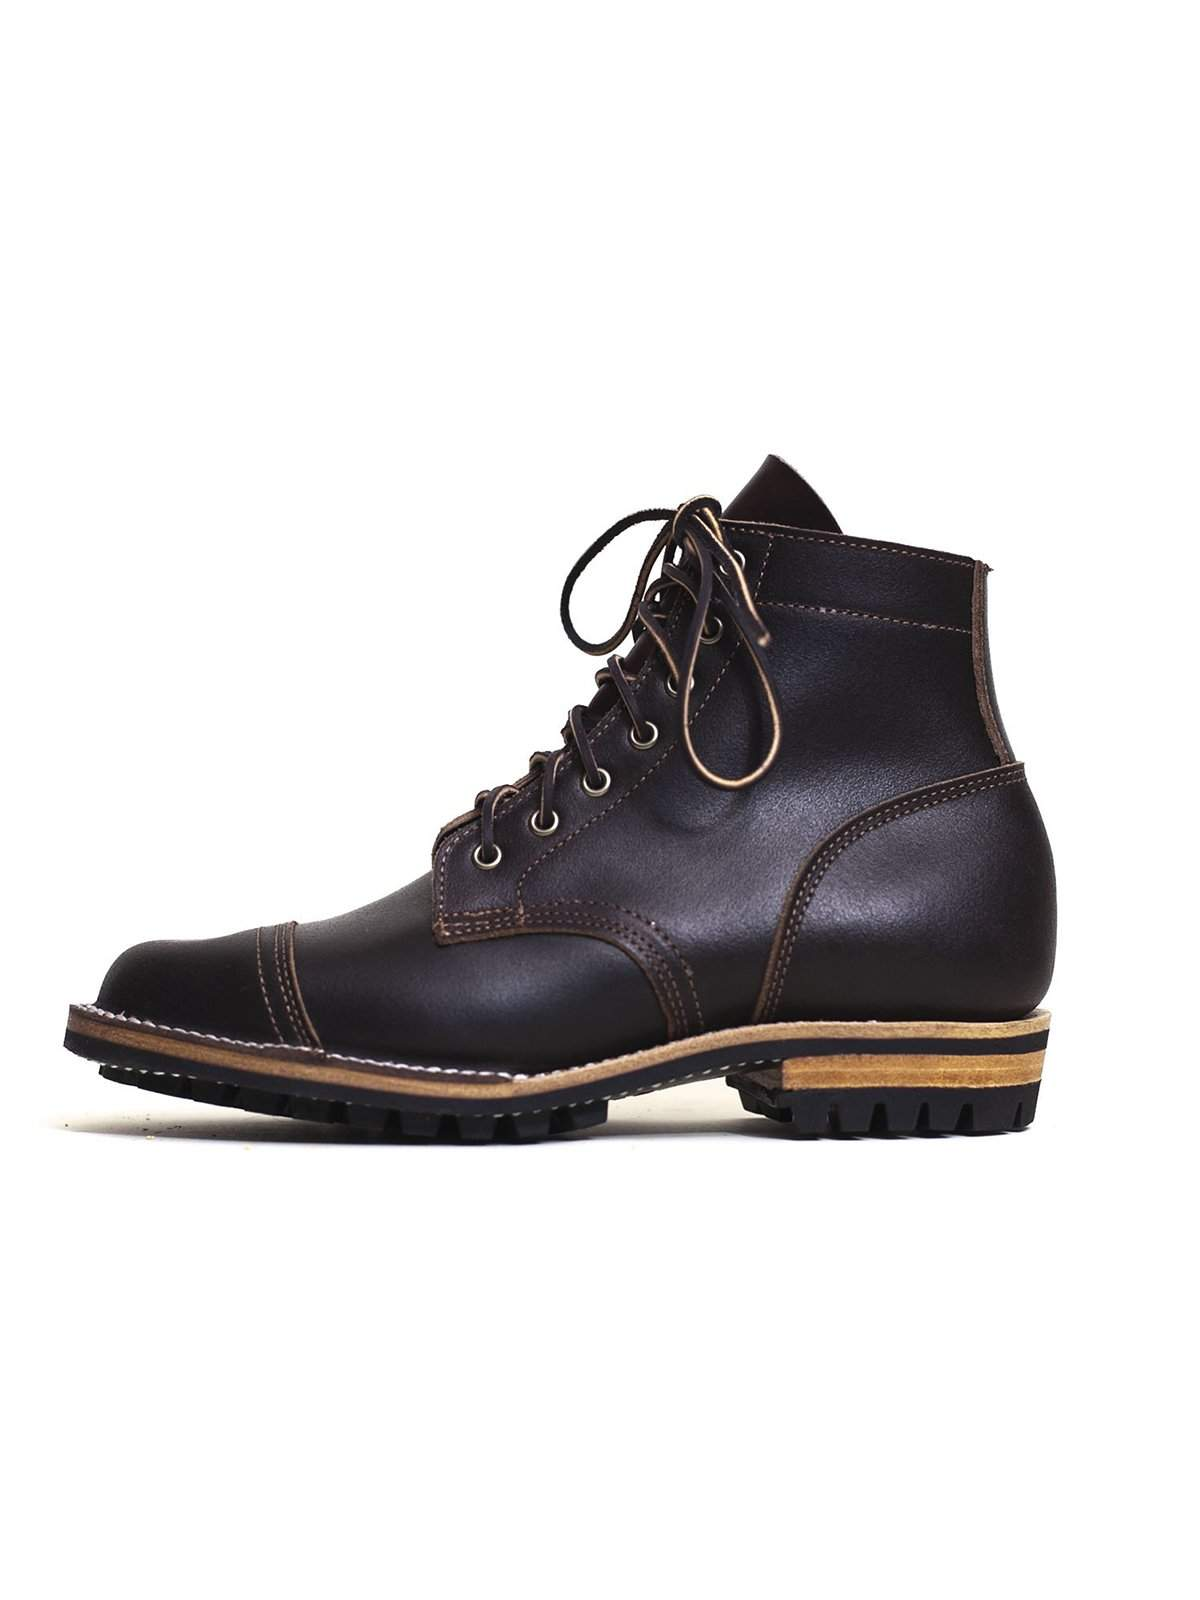 Truman Boot Co. Java Waxed Flesh - MORE by Morello Indonesia